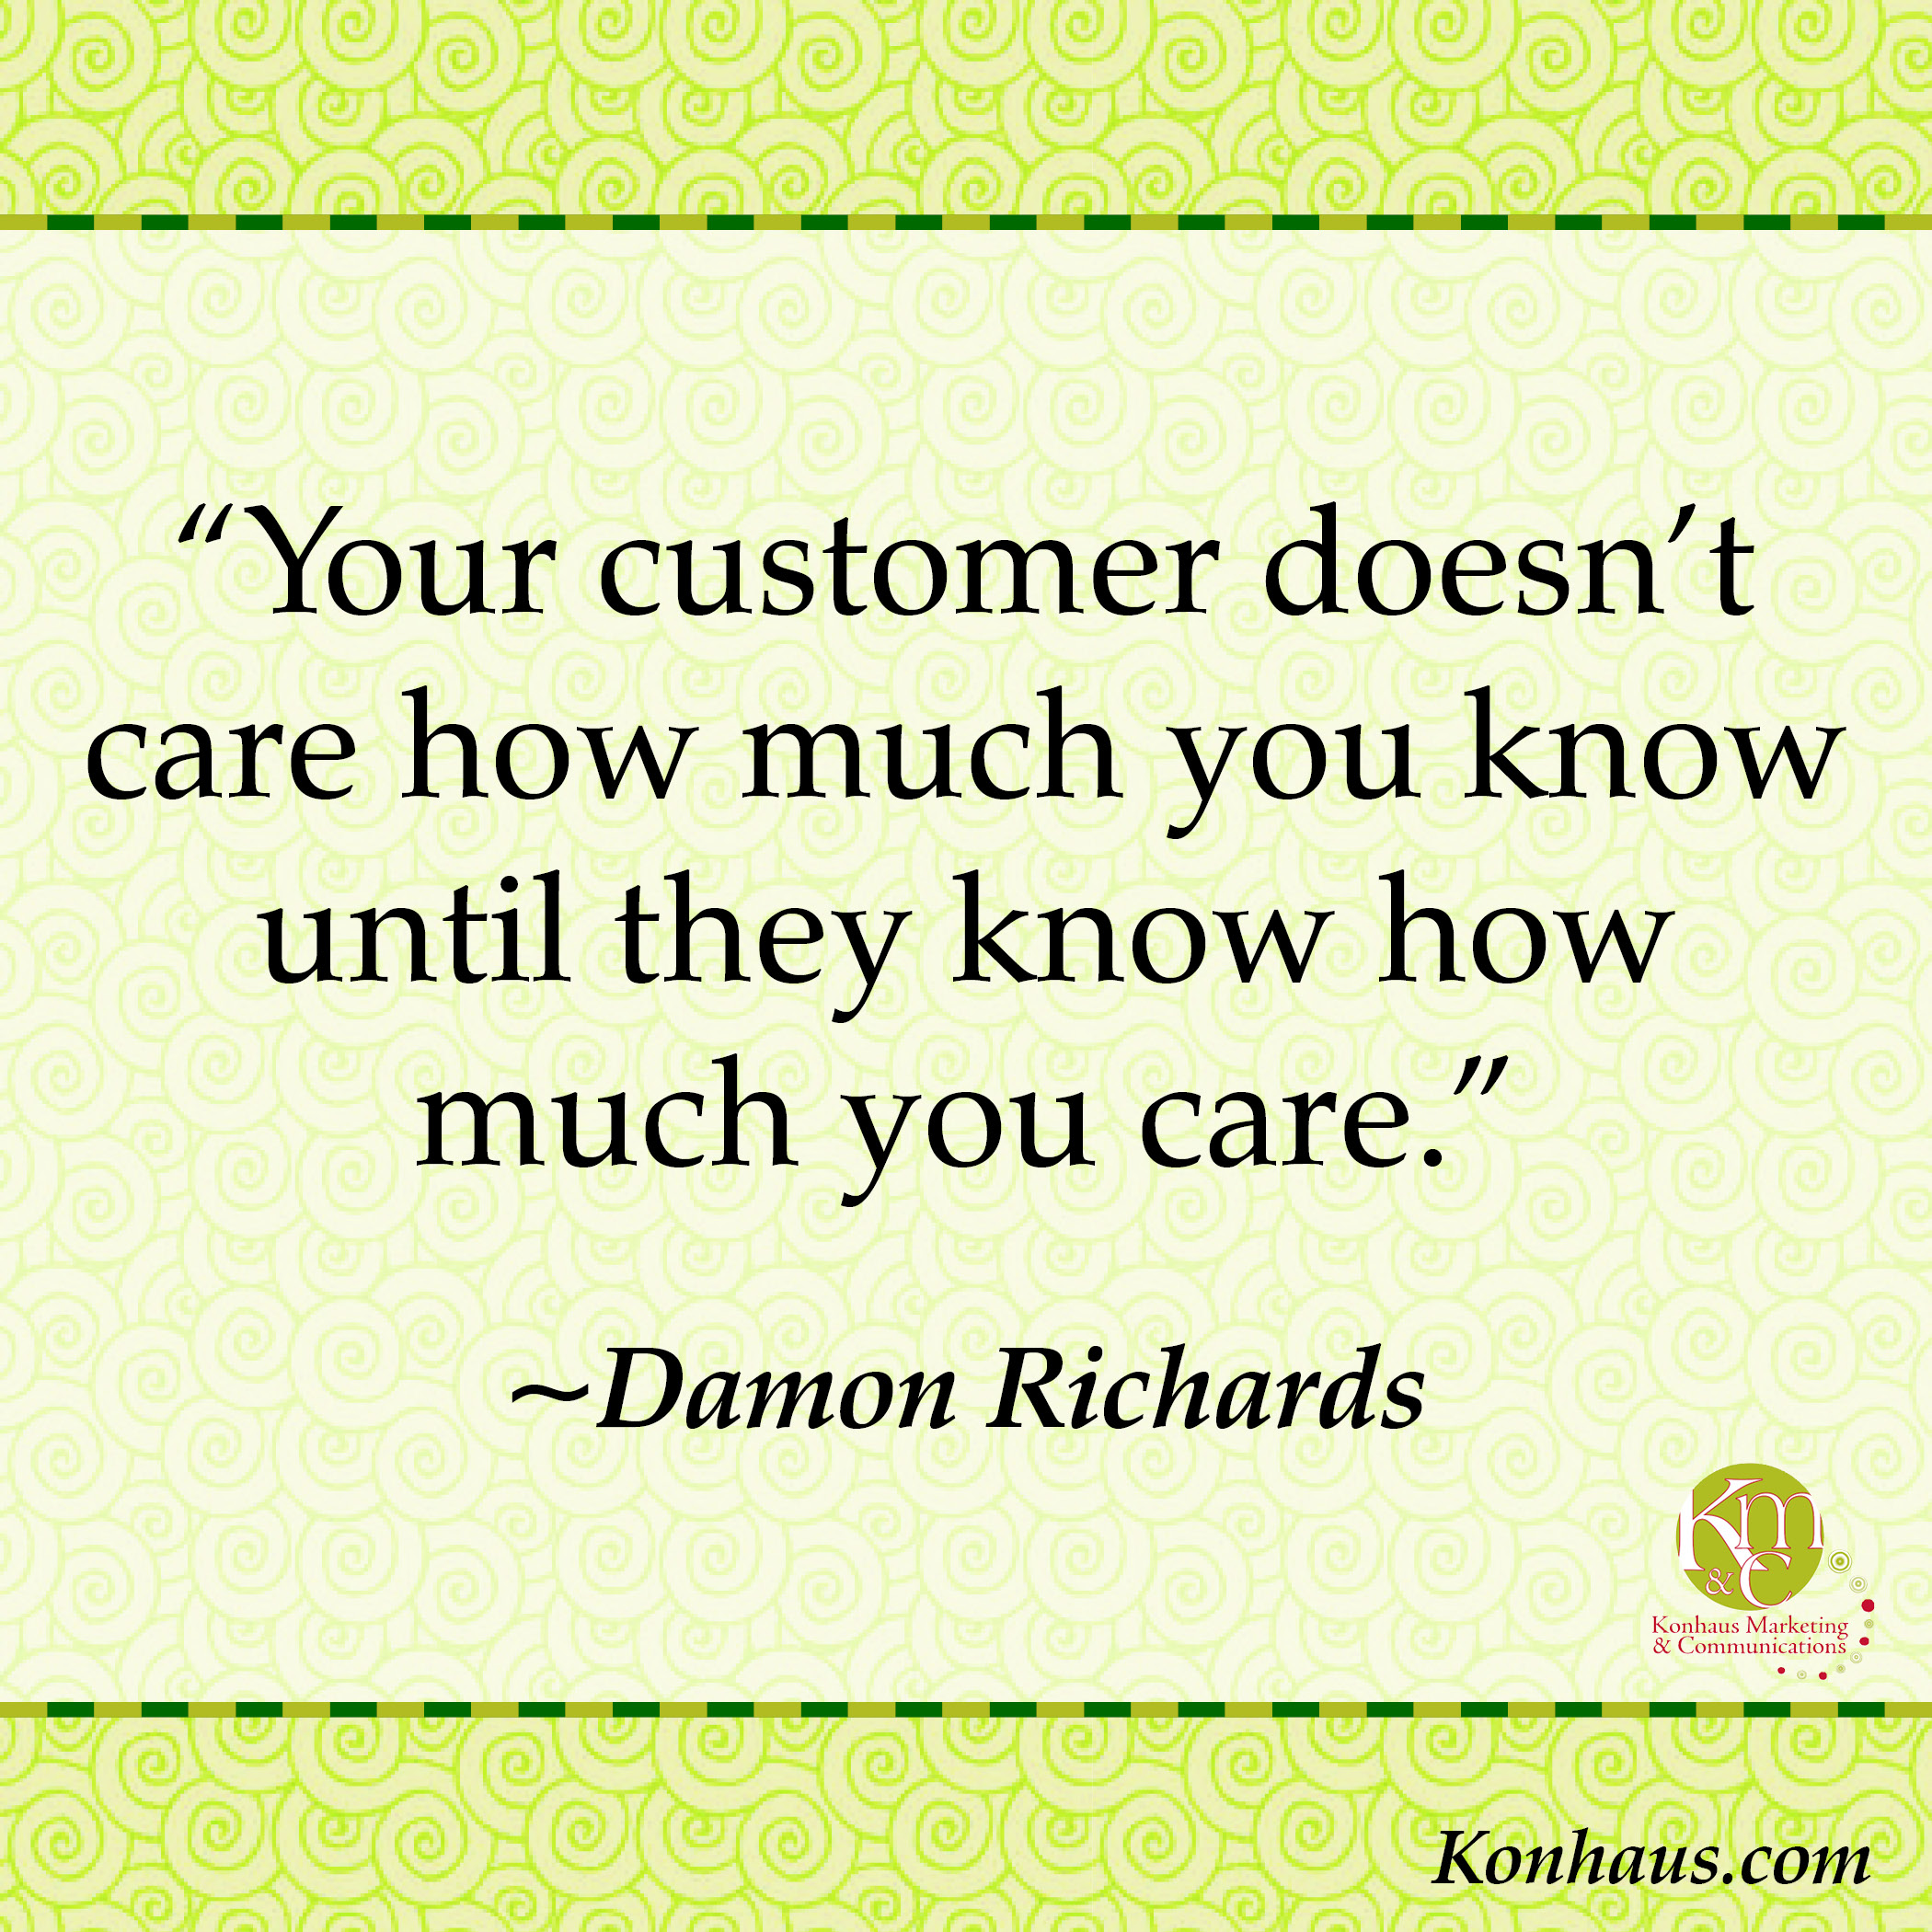 Funny Customer Service Quotes Glamorous 5 Tips For Stellar Customer Service  Konhaus Print & Marketing